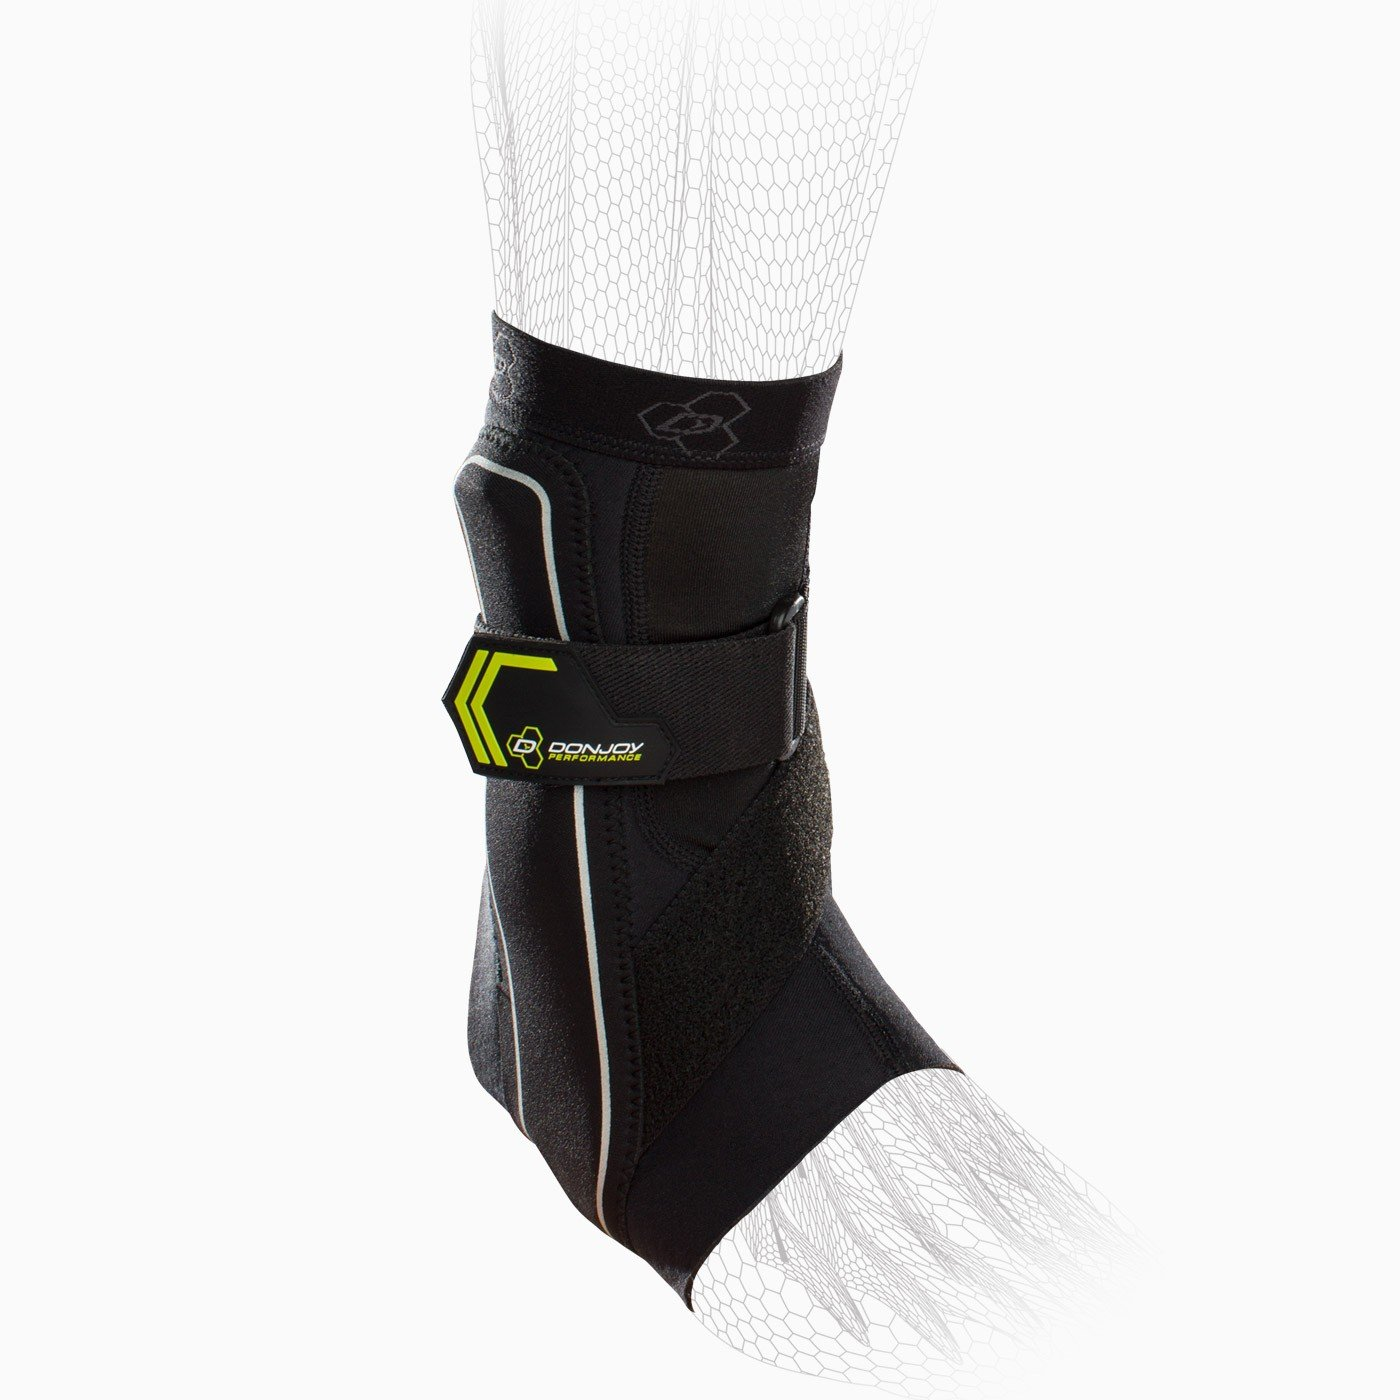 DonJoy Performance Bionic Ankle Support Brace: Right Foot, Slime Green, Medium